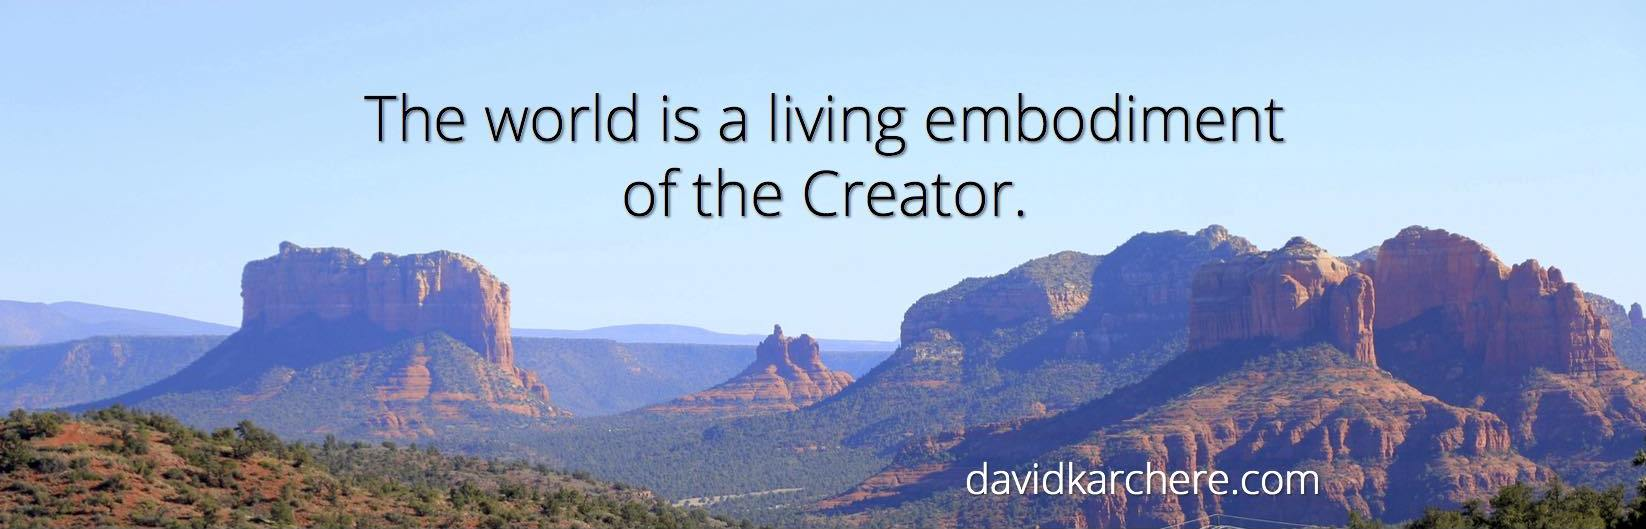 The Creation Becomes the Creator